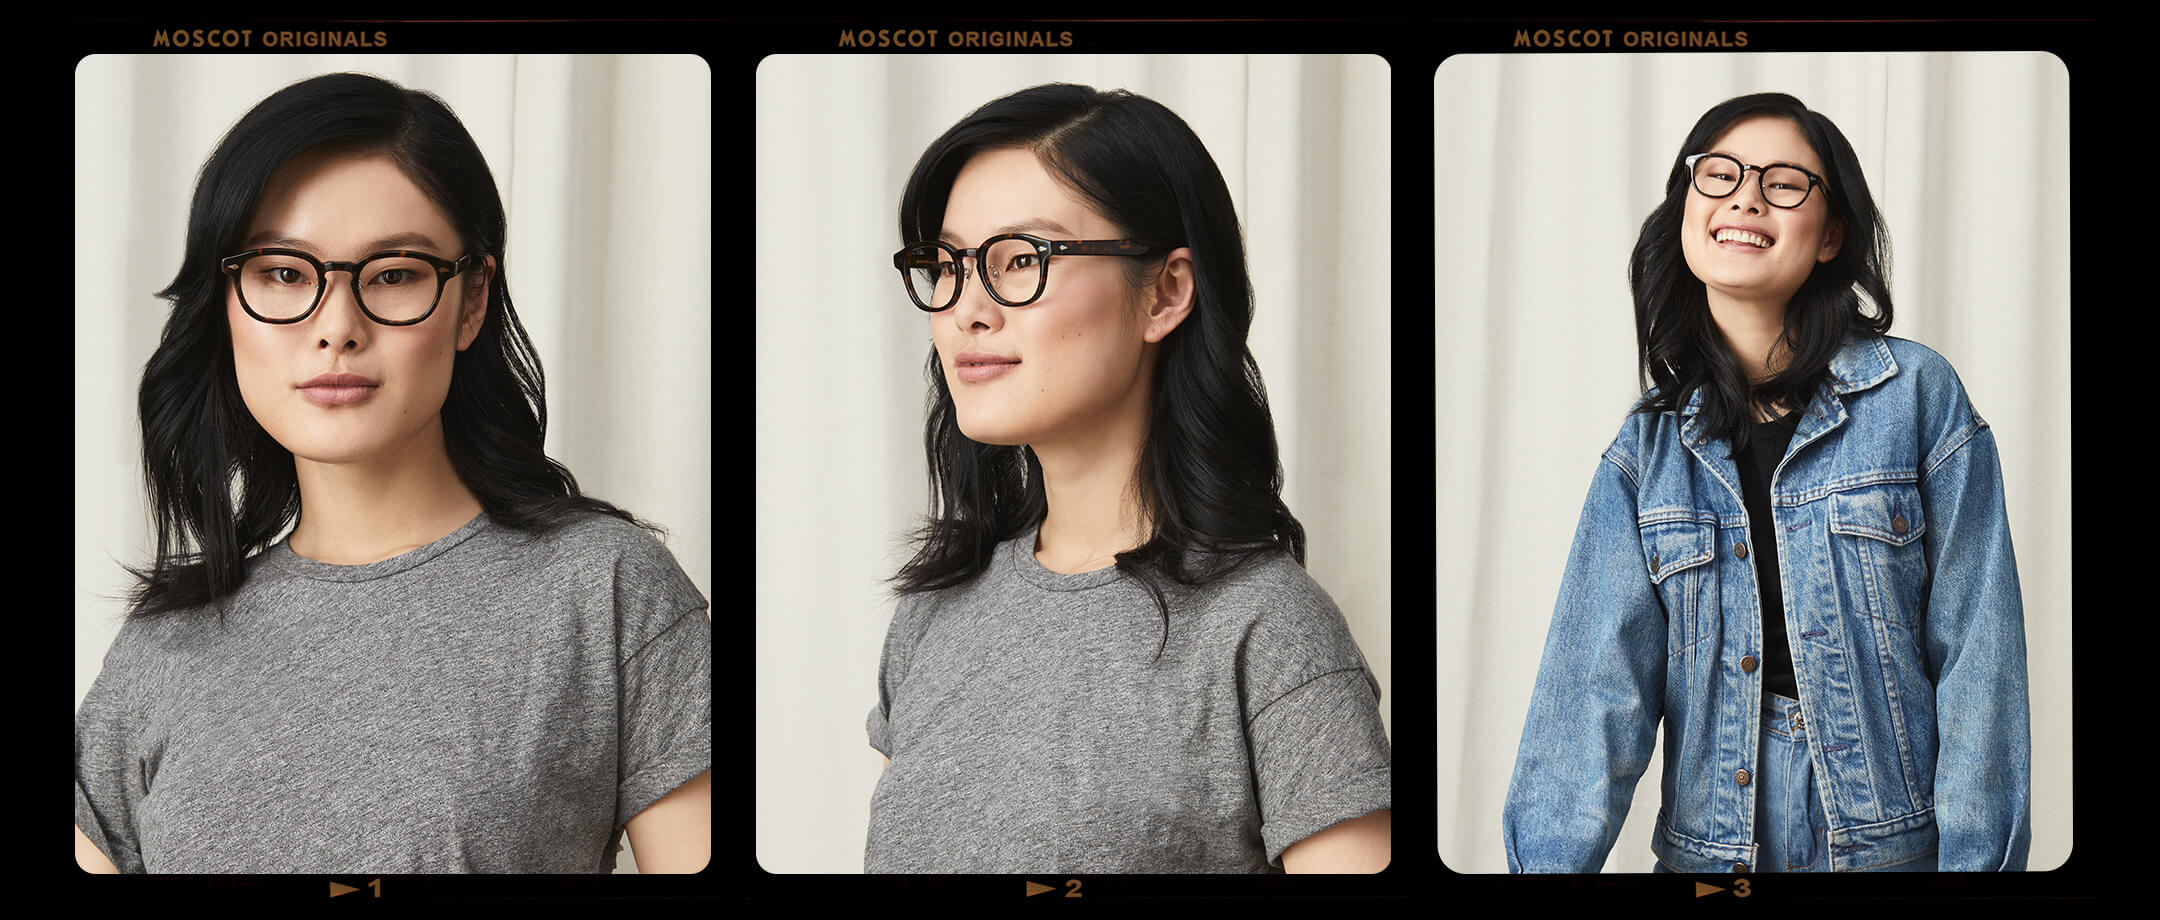 Model is wearing The LEMTOSH W/ Metal Nose Pads in size 49 in Tortoise.